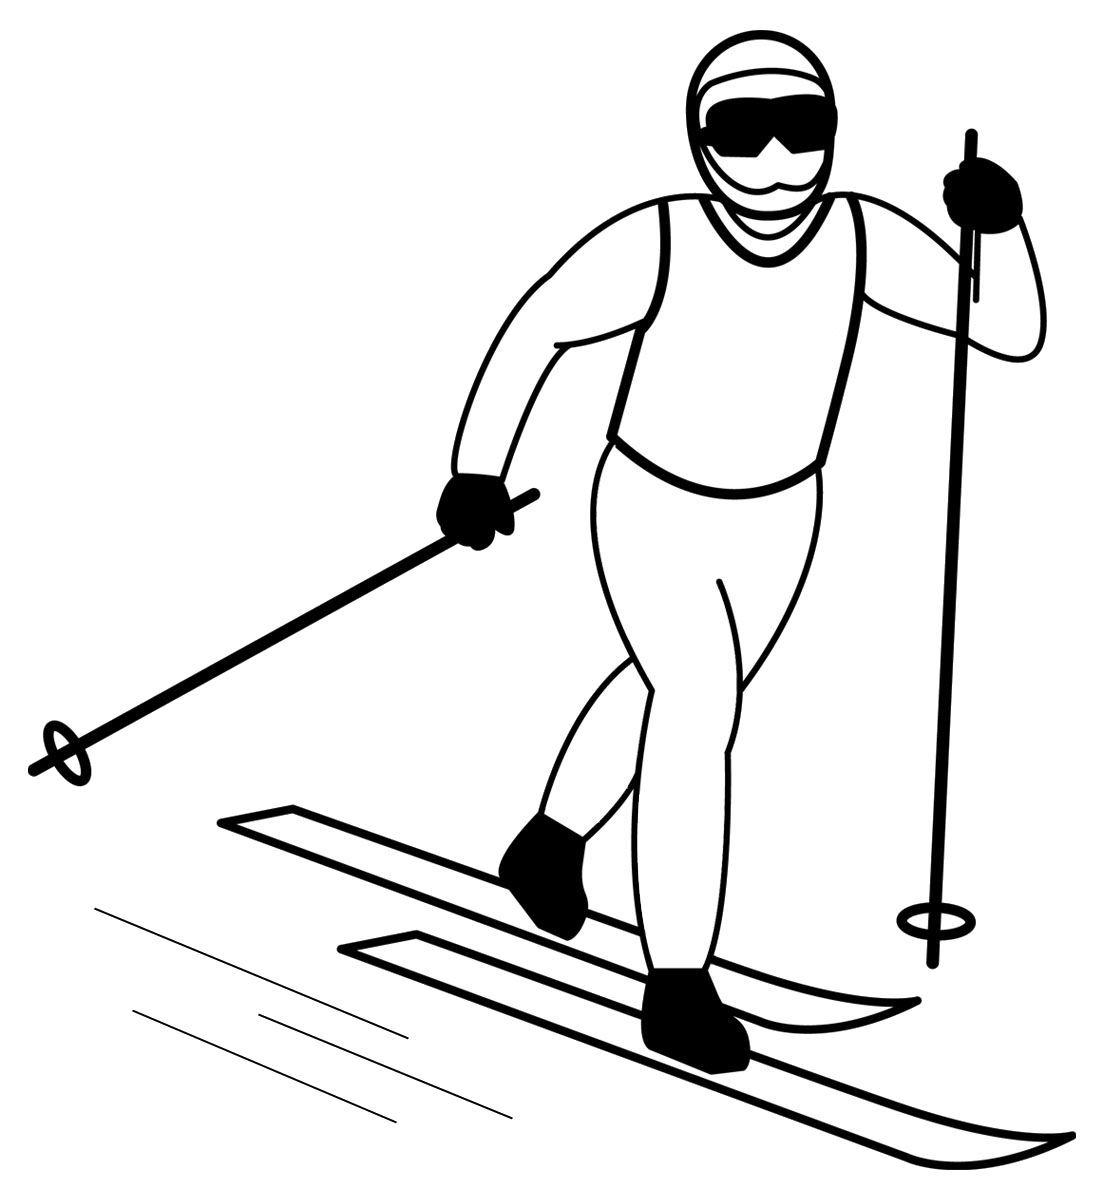 Learn Skiing Coloring Pages For Kids B08 Printable Skiing Coloring Pages For Kids Clip Art Sports Wallpapers Kids Clipart